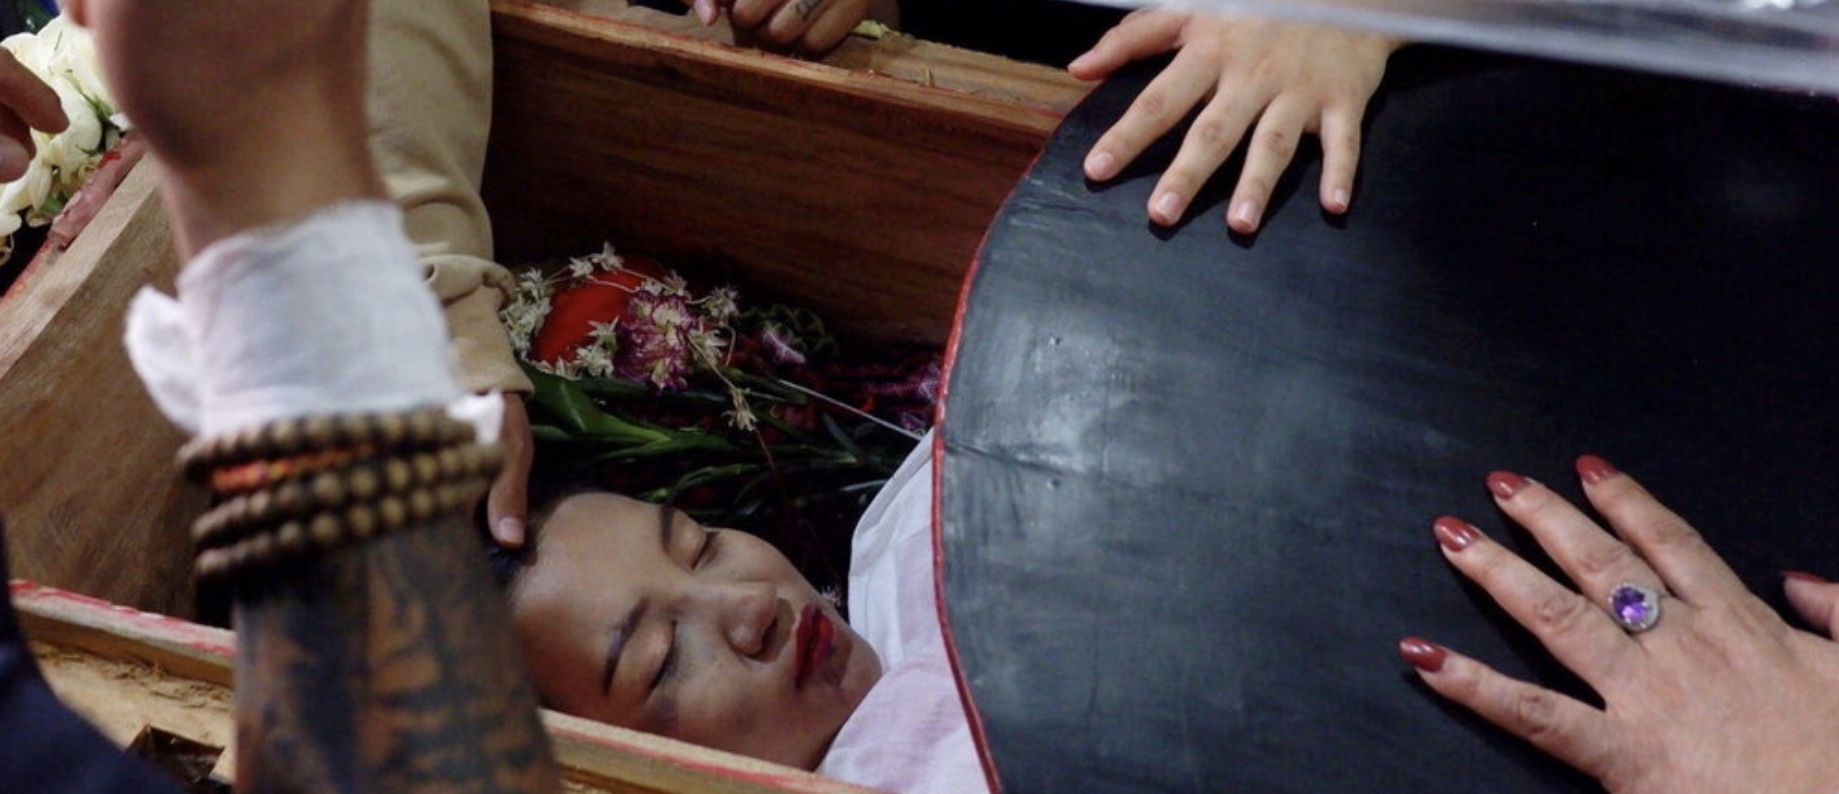 Ma Kyal Sin's funeral